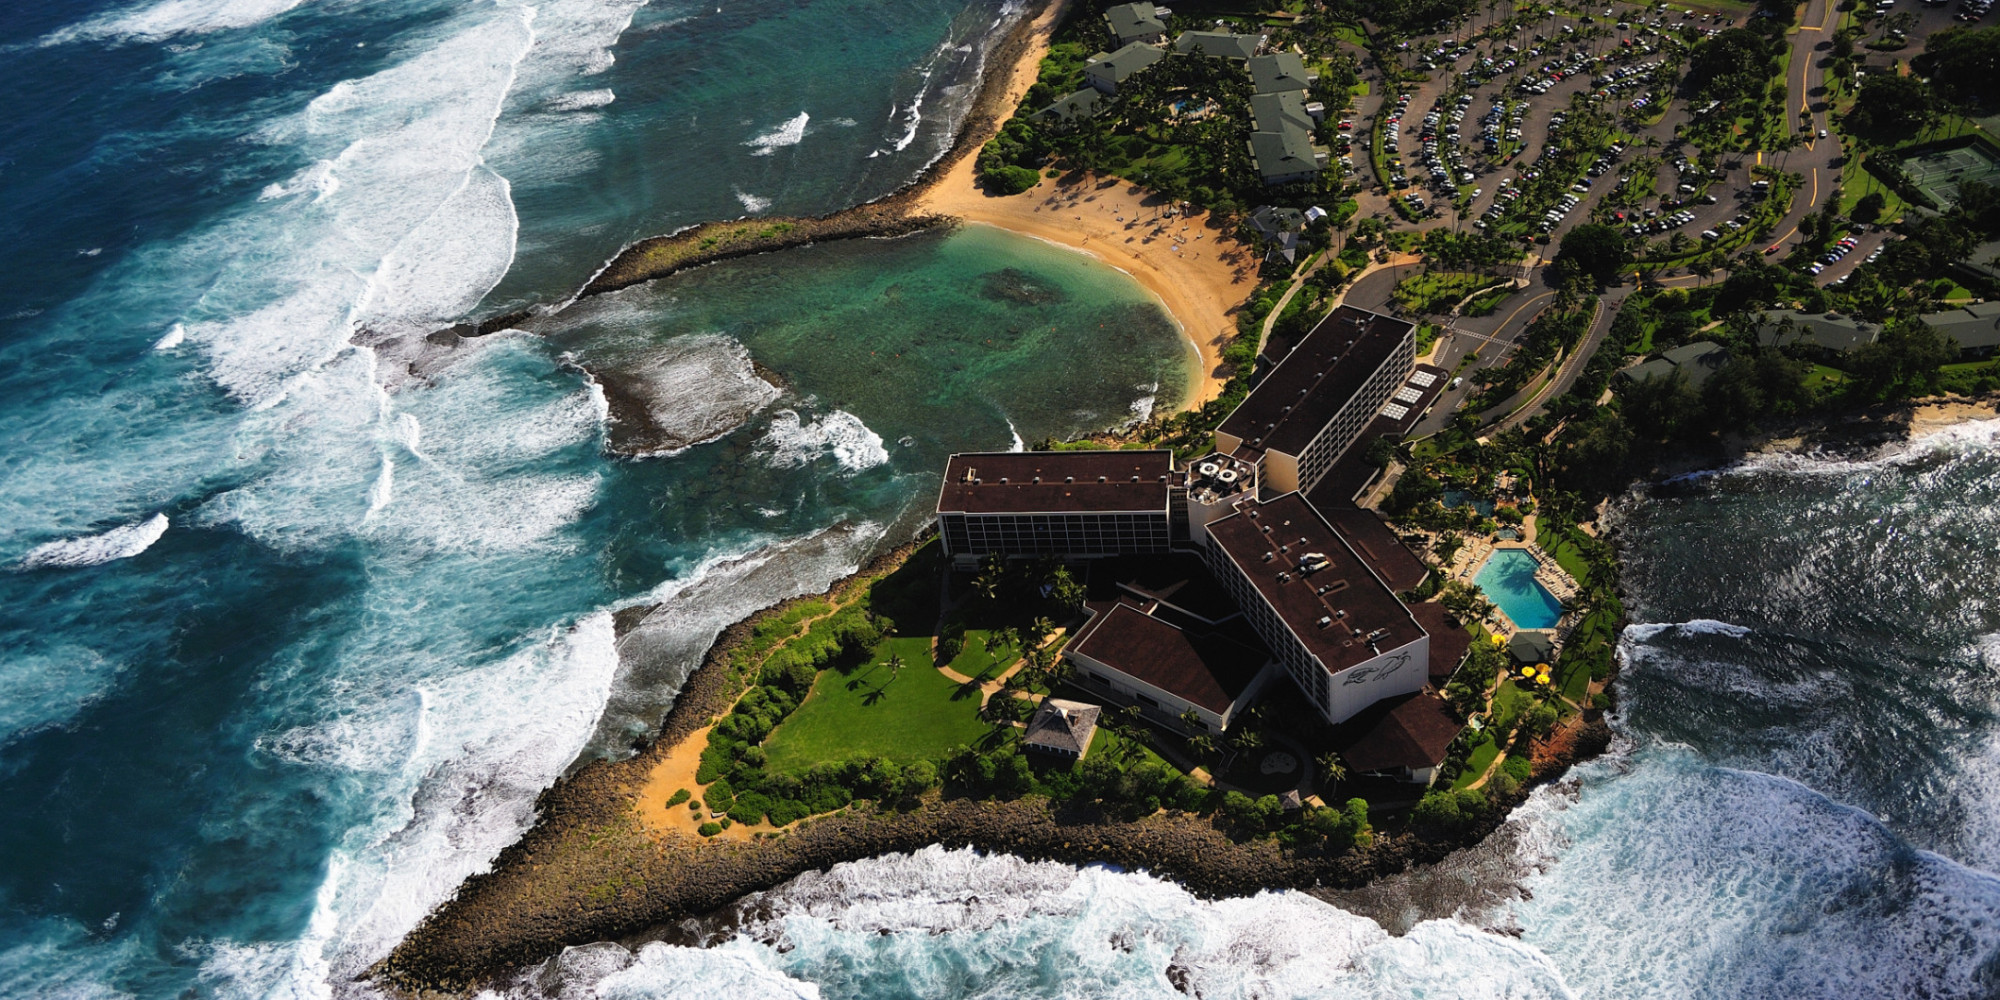 hawaii reaches turtle bay conservation agreement but